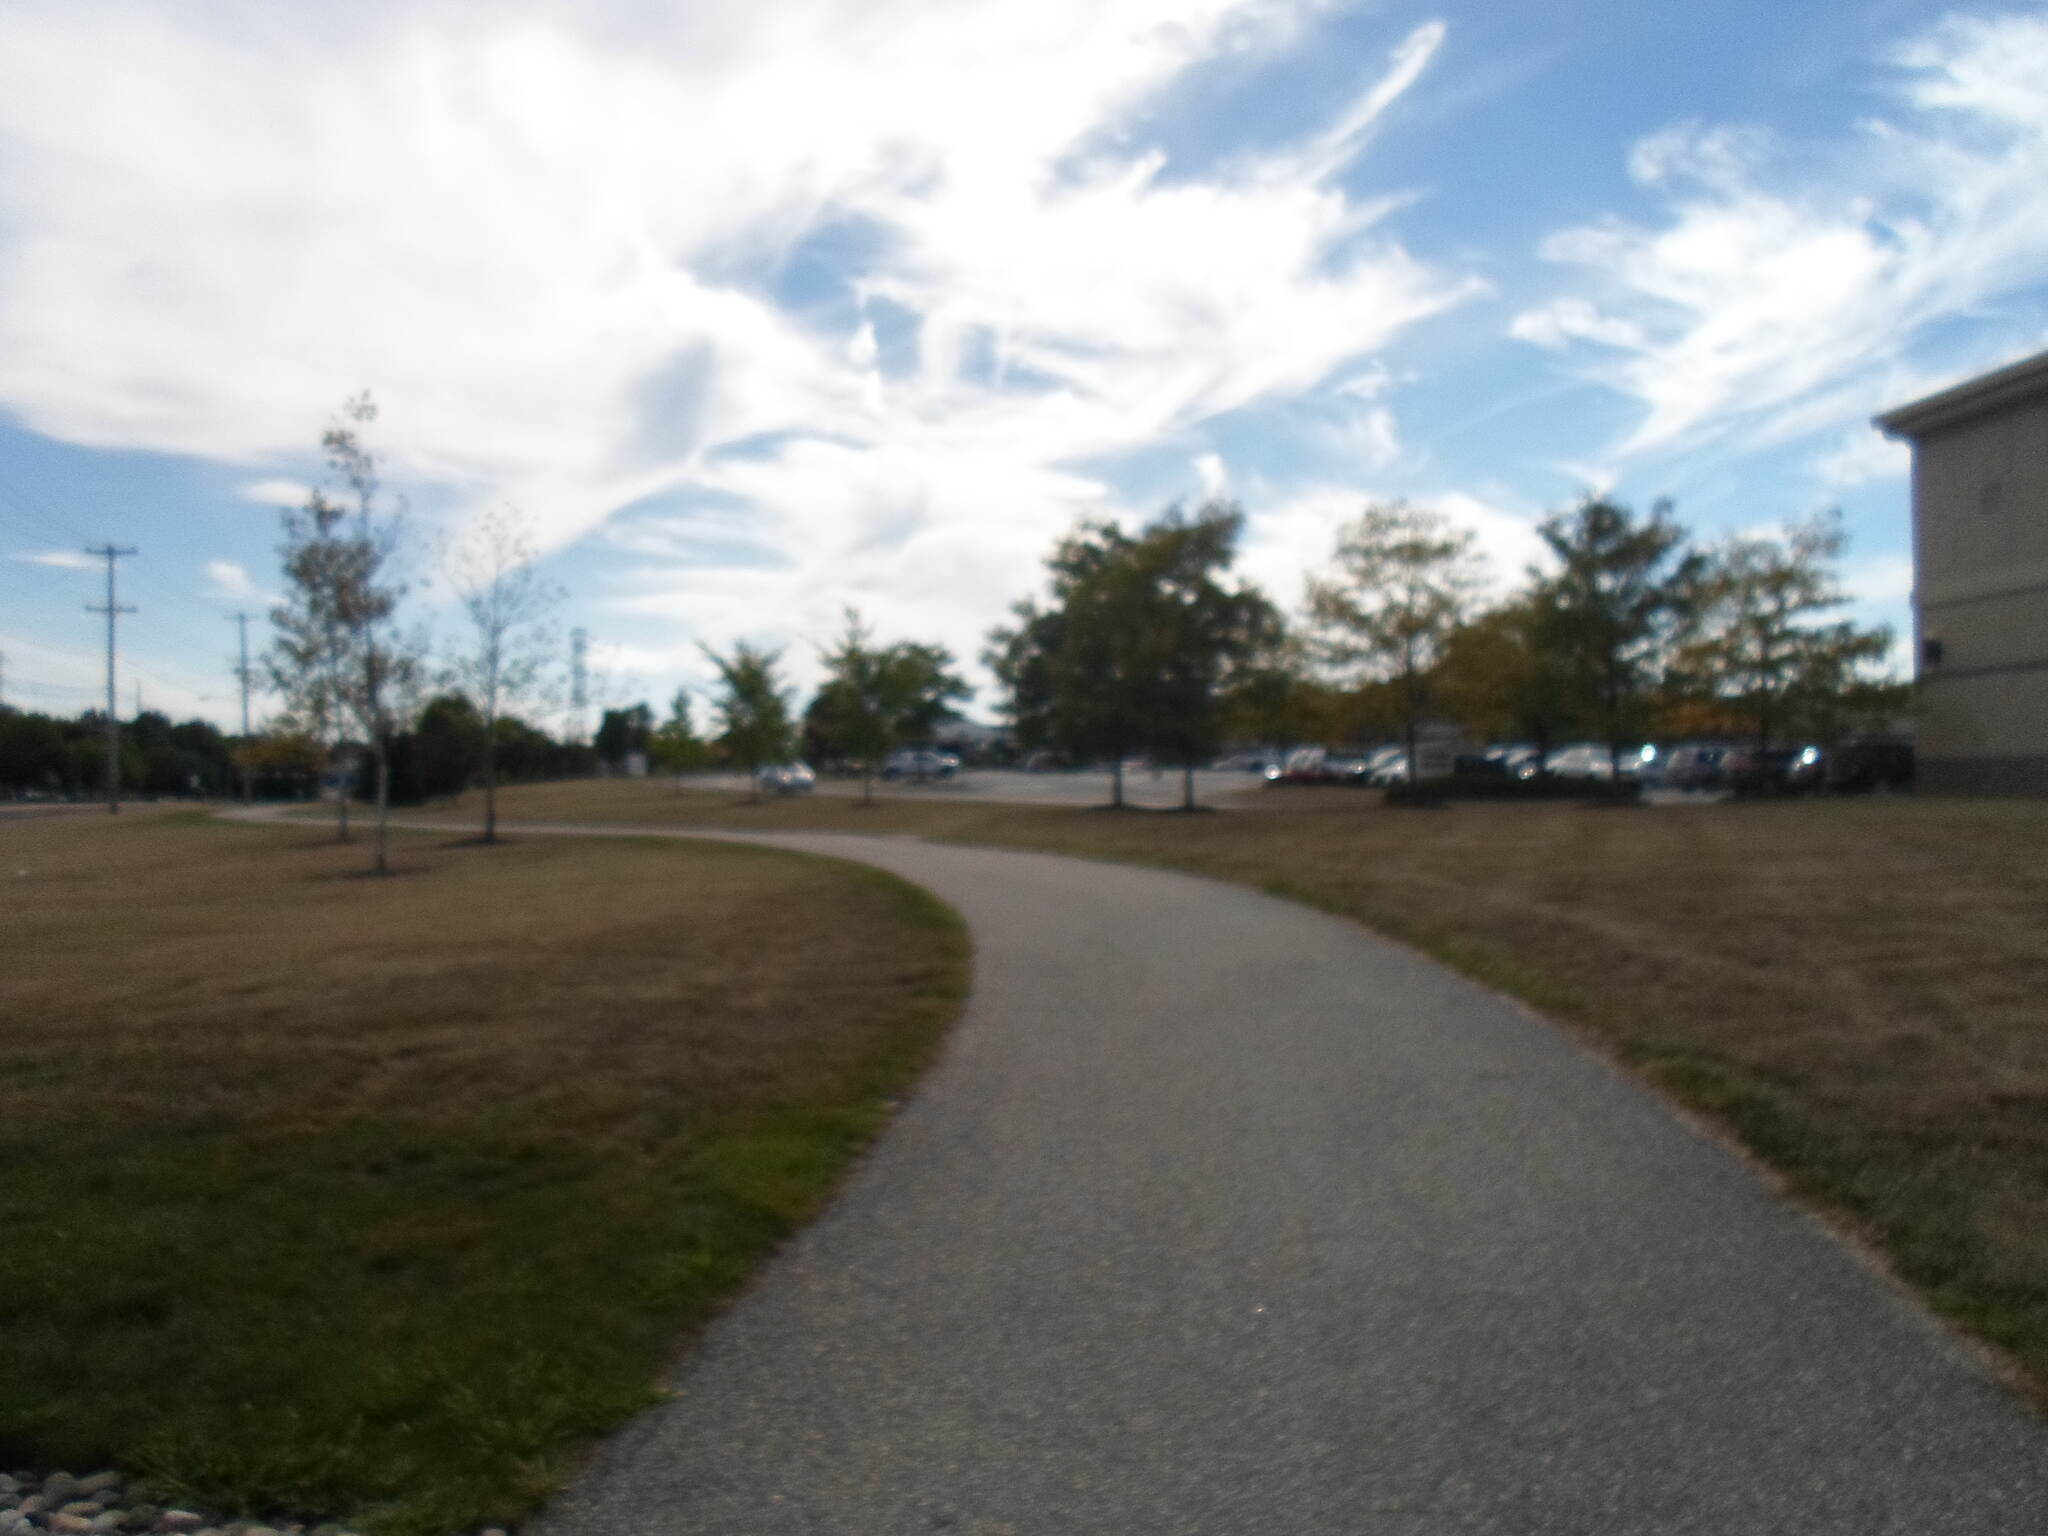 Cross County Trail (PA) Cross County Trail Winding around the Metroplex shopping center in Plymouth Meeting. Note the late summer sky. Taken Sept. 2014.